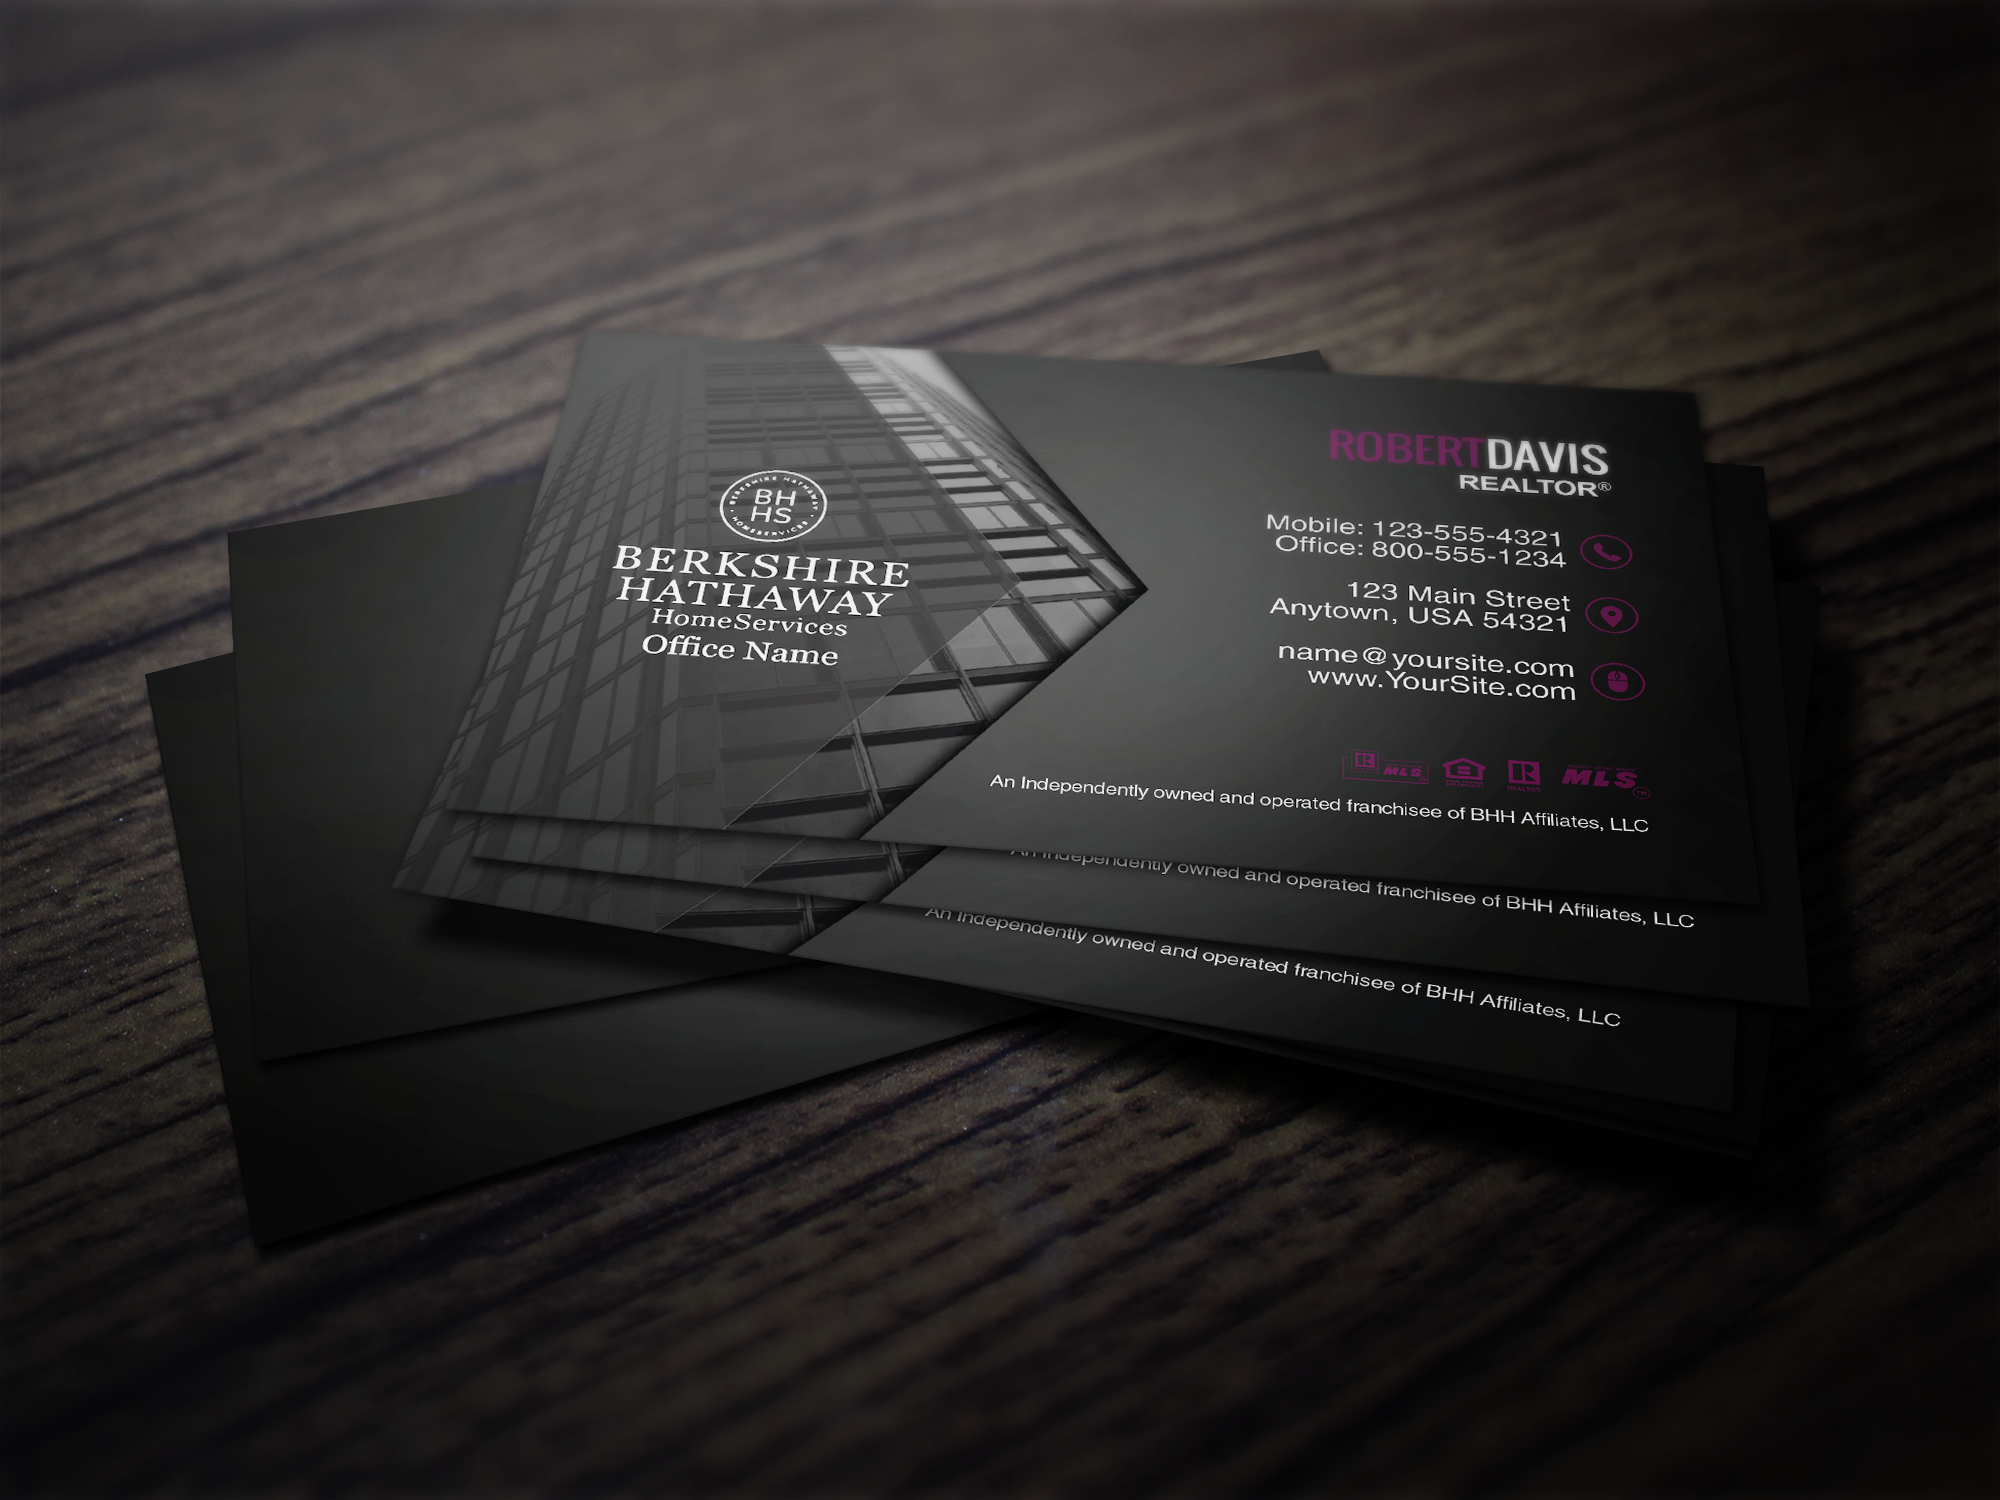 Berkshire Hathaway Realtors Can Use Our On Site Designer To Create Elegant New Business Cards Like T Glossy Business Cards Business Cards Business Cards Online